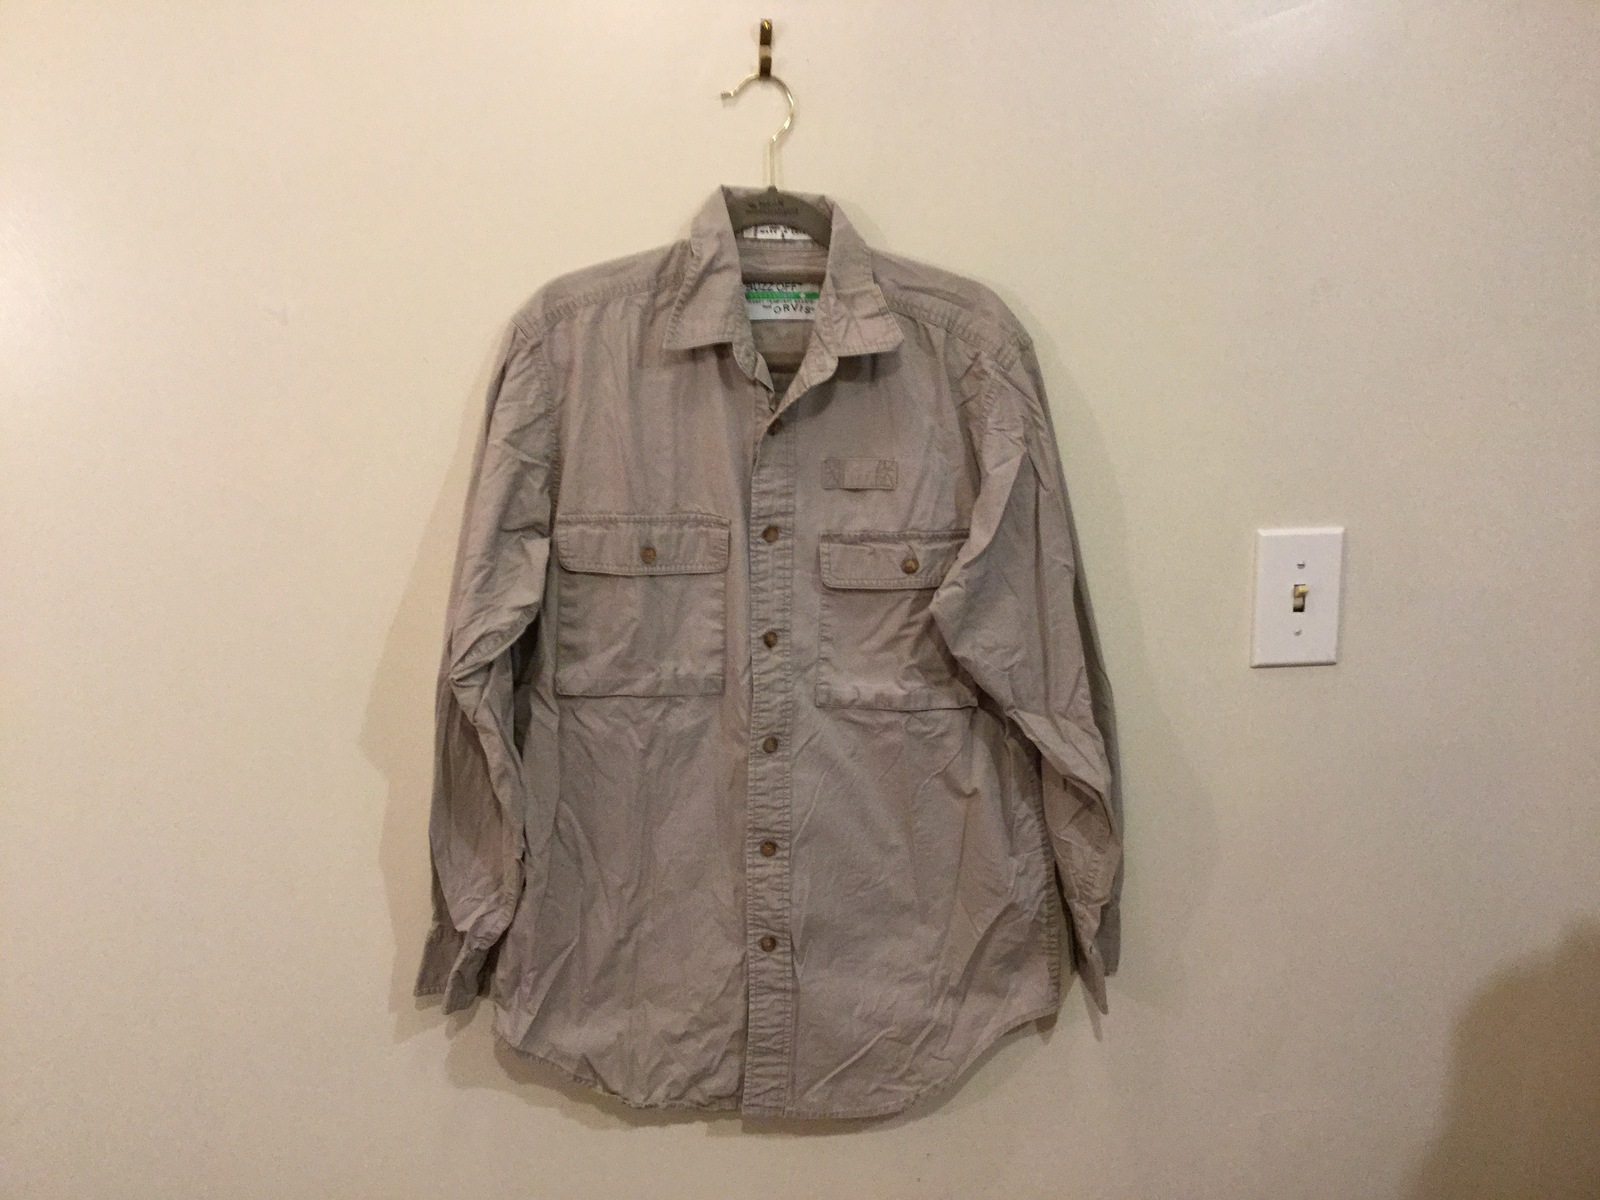 BUZZ OFF by Orvis Insect Shield Reppelent 100% Cotton Button Down Shirt, size S